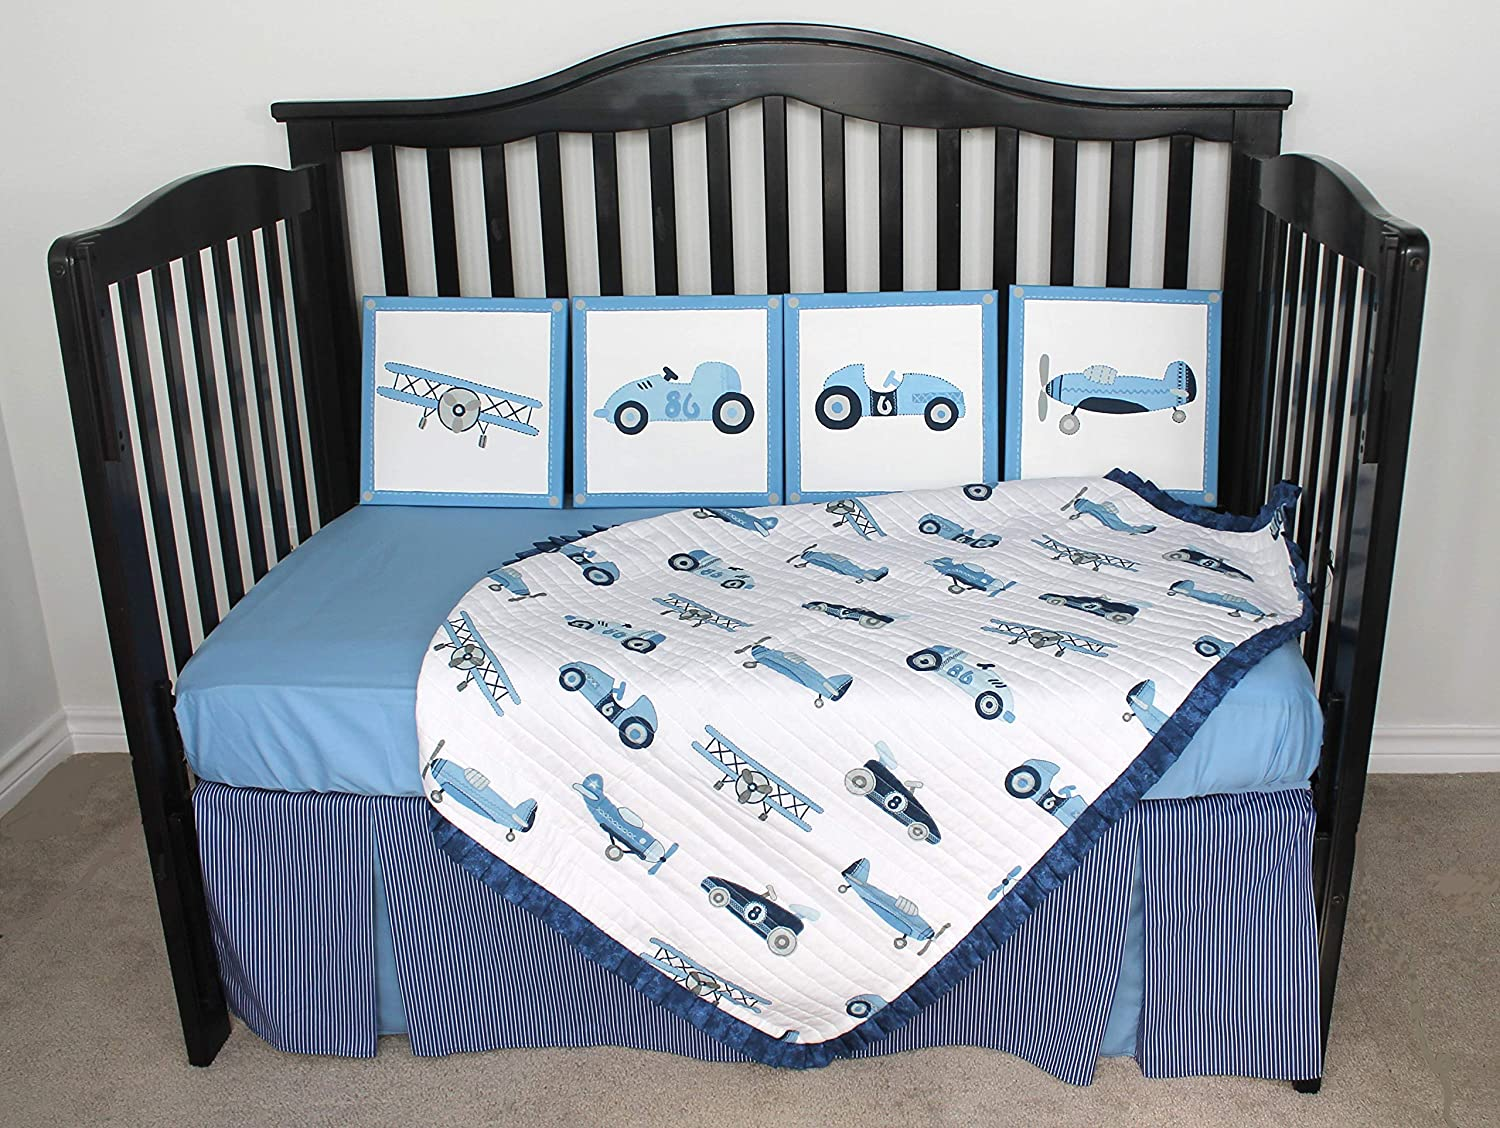 Image of 10 Piece Baby Bedding Crib Set Vintage Cars Planes One of a Kind Home and Kitchen